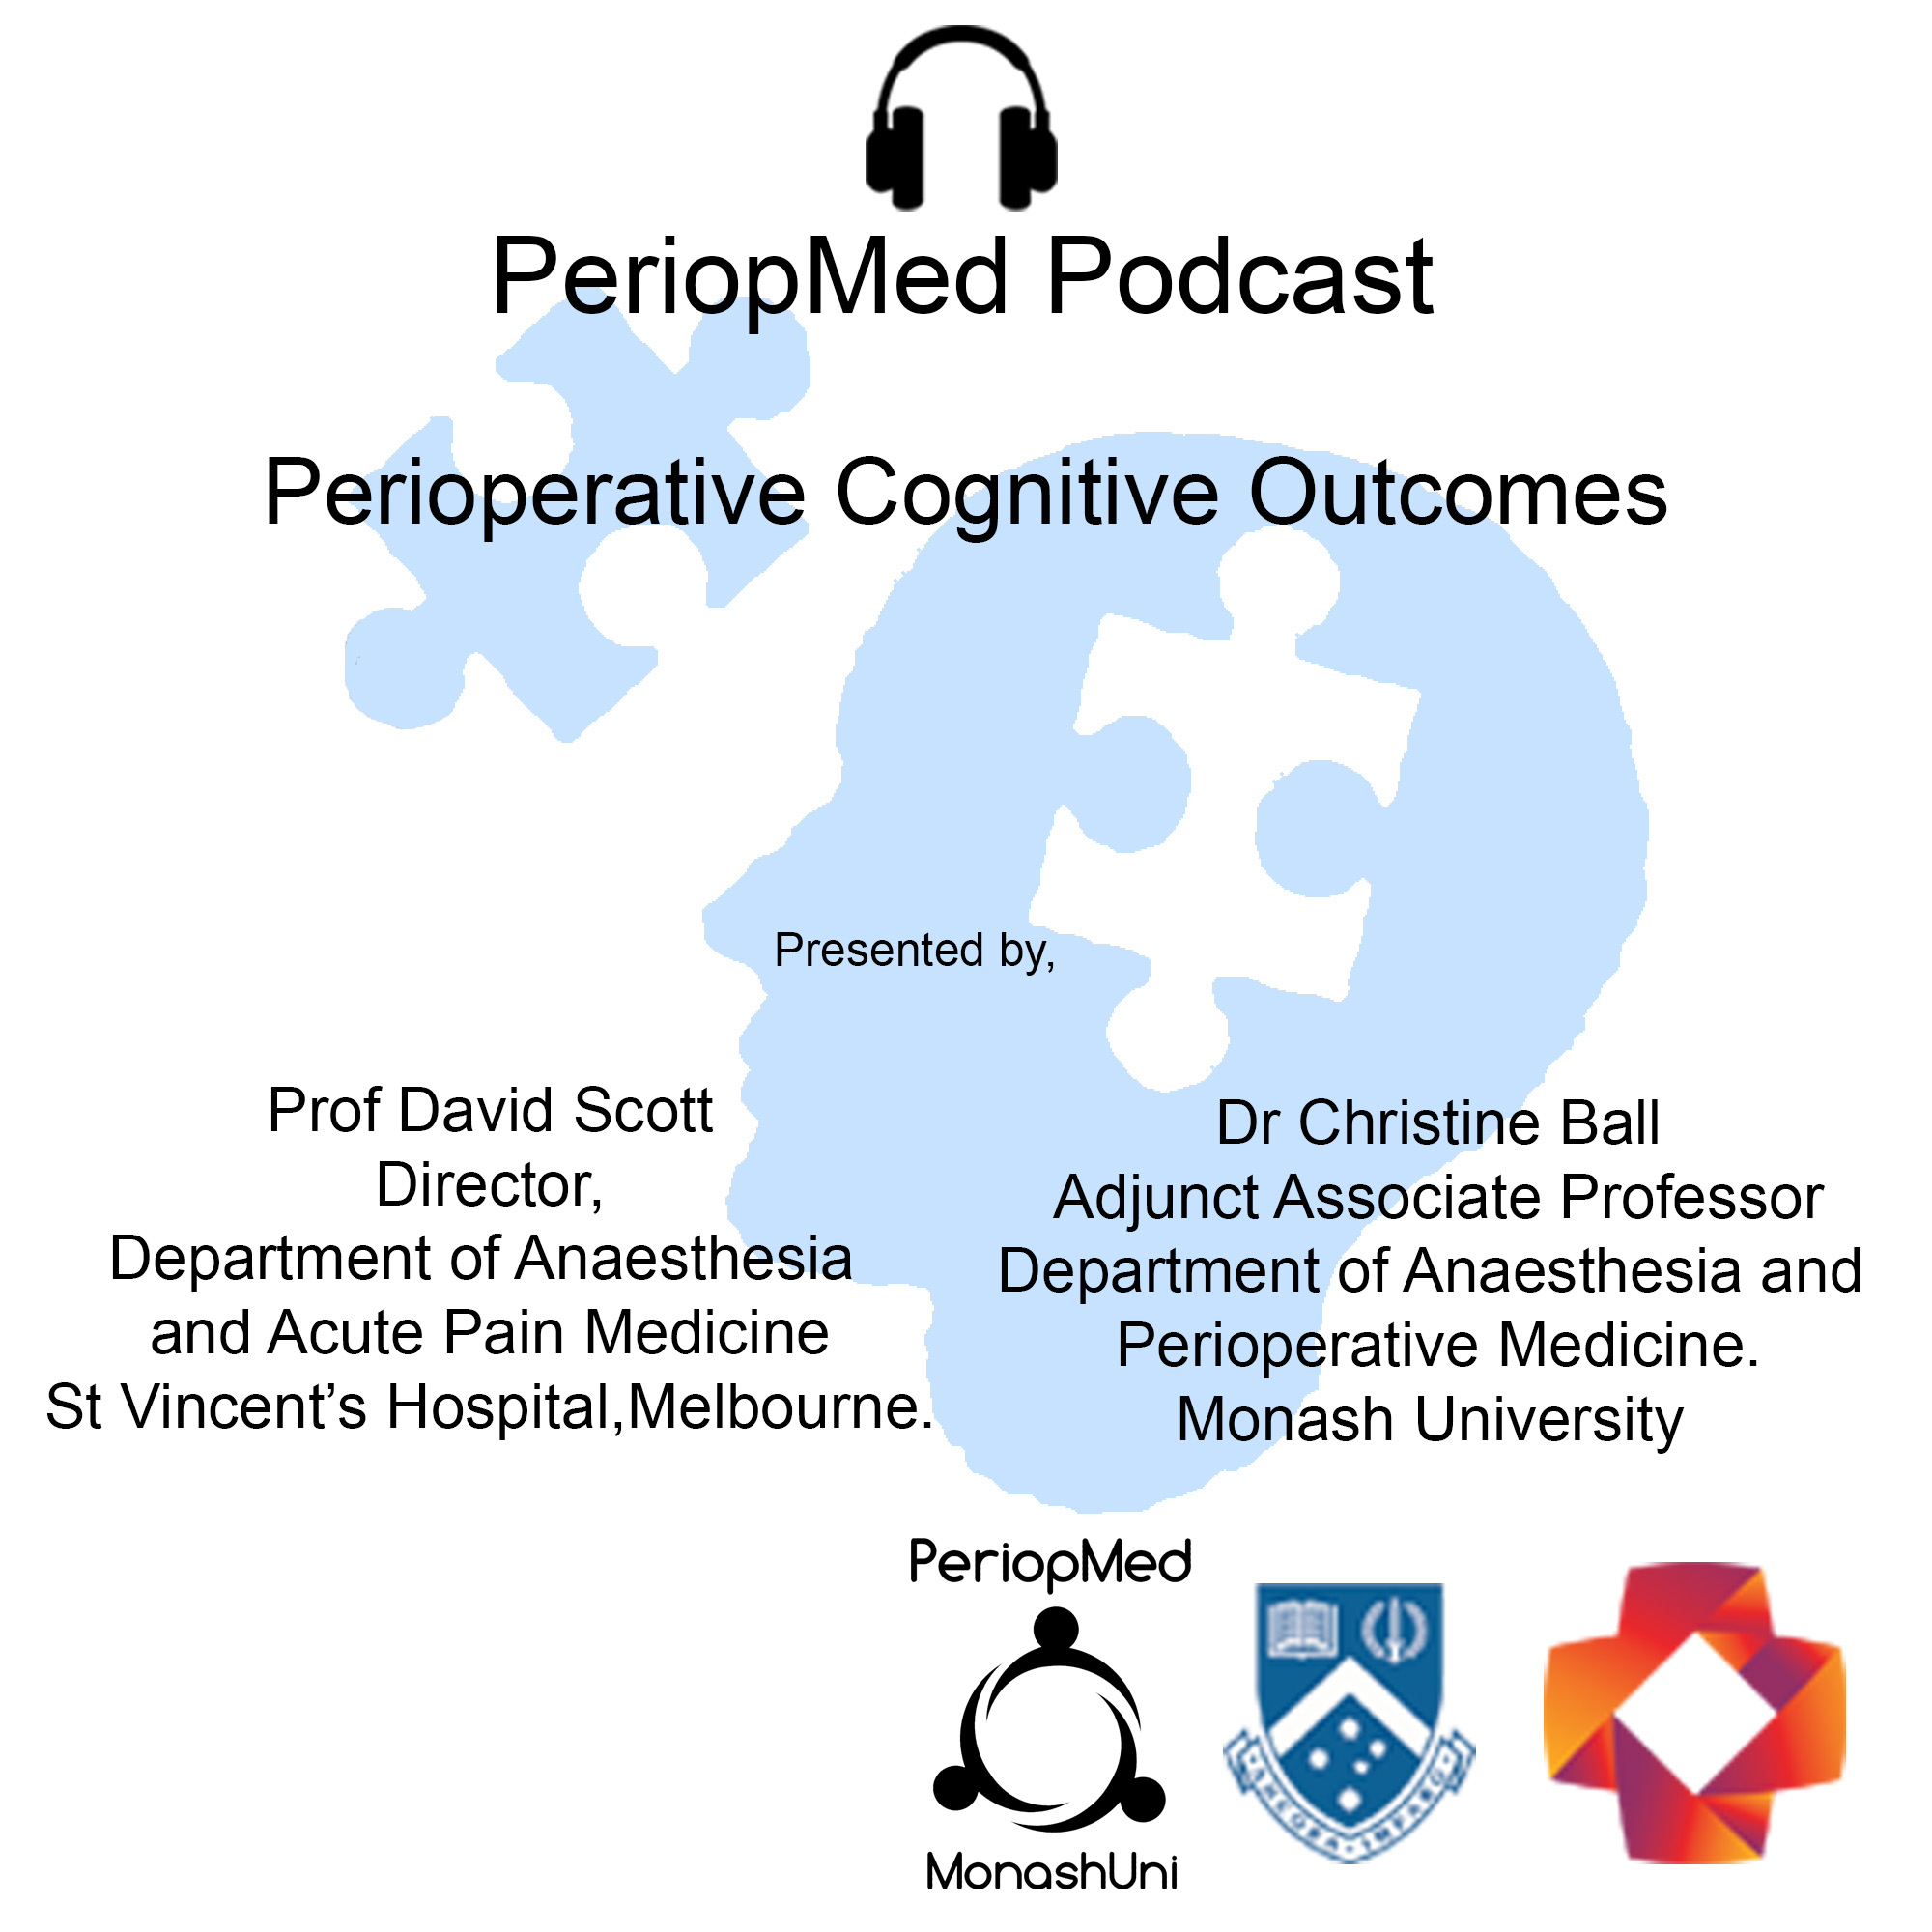 Perioperative Cognitive Outcomes